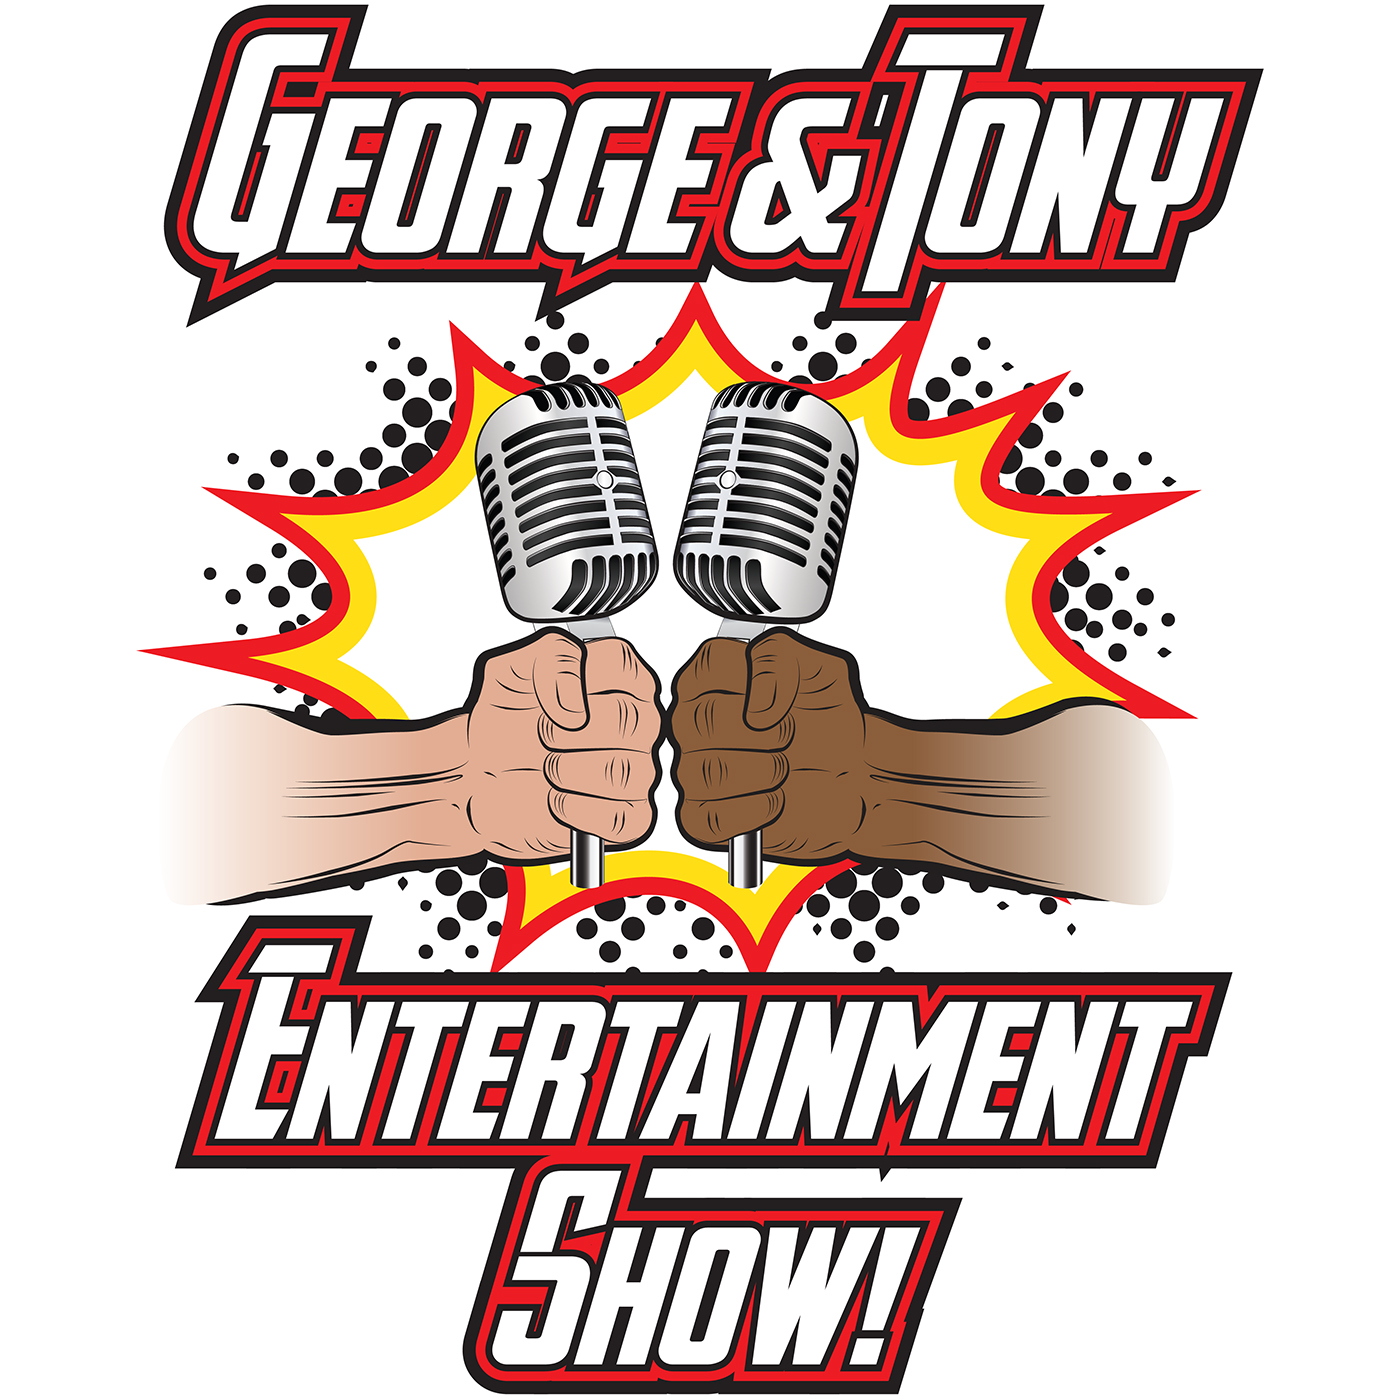 George and Tony Entertainment Show #110